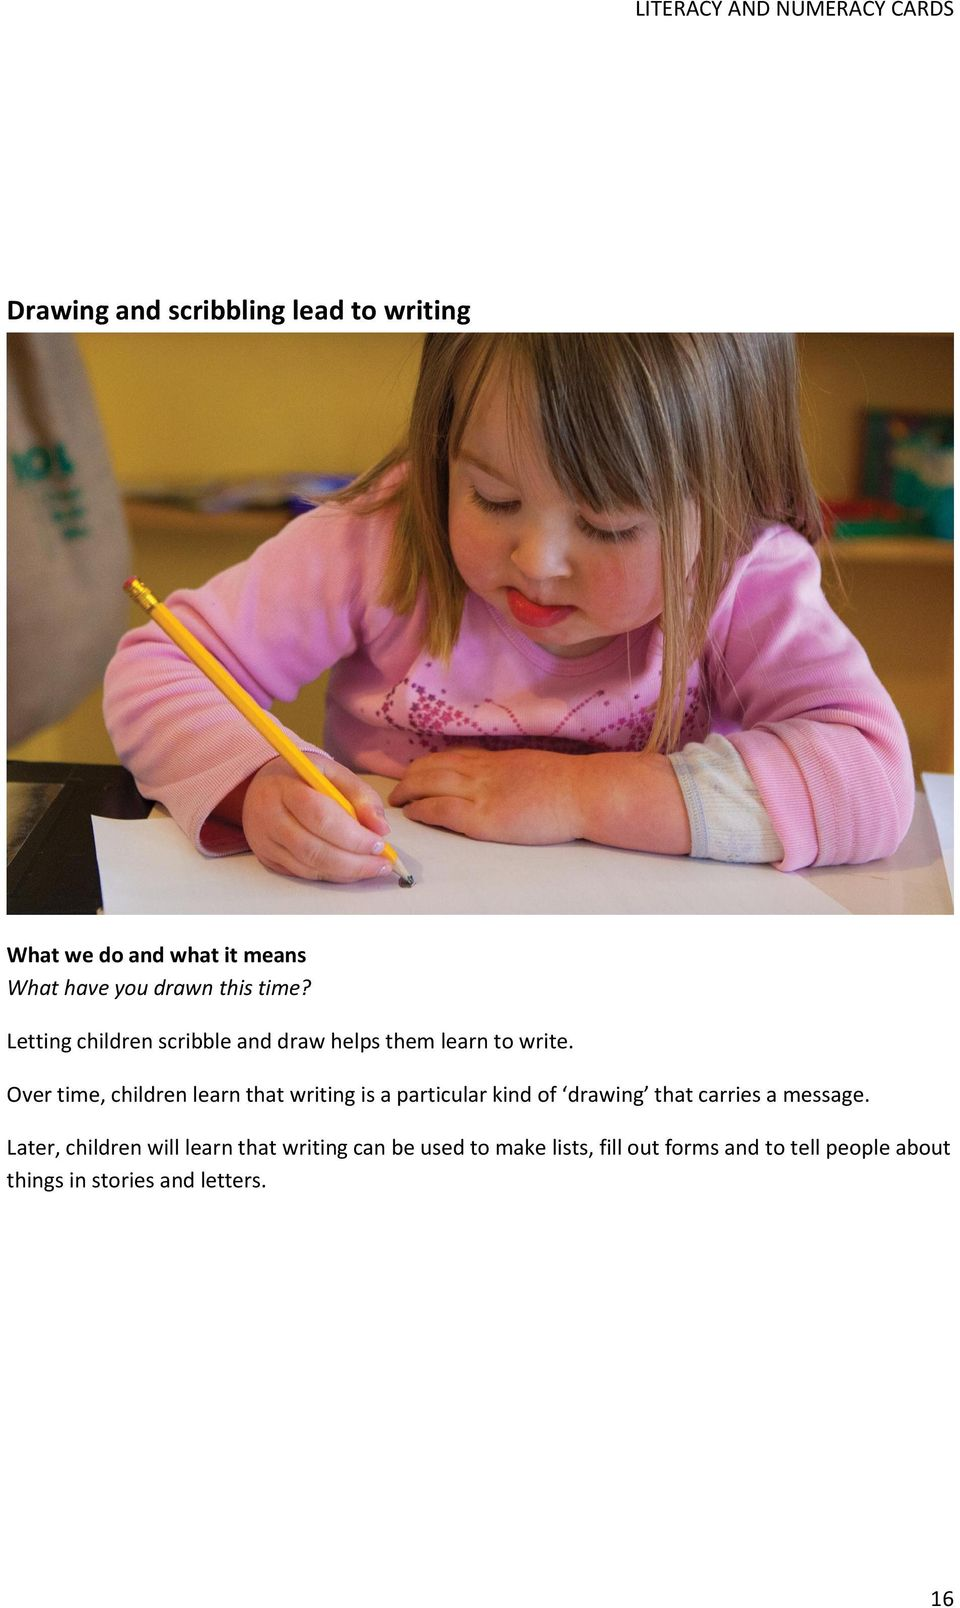 Over time, children learn that writing is a particular kind of drawing that carries a